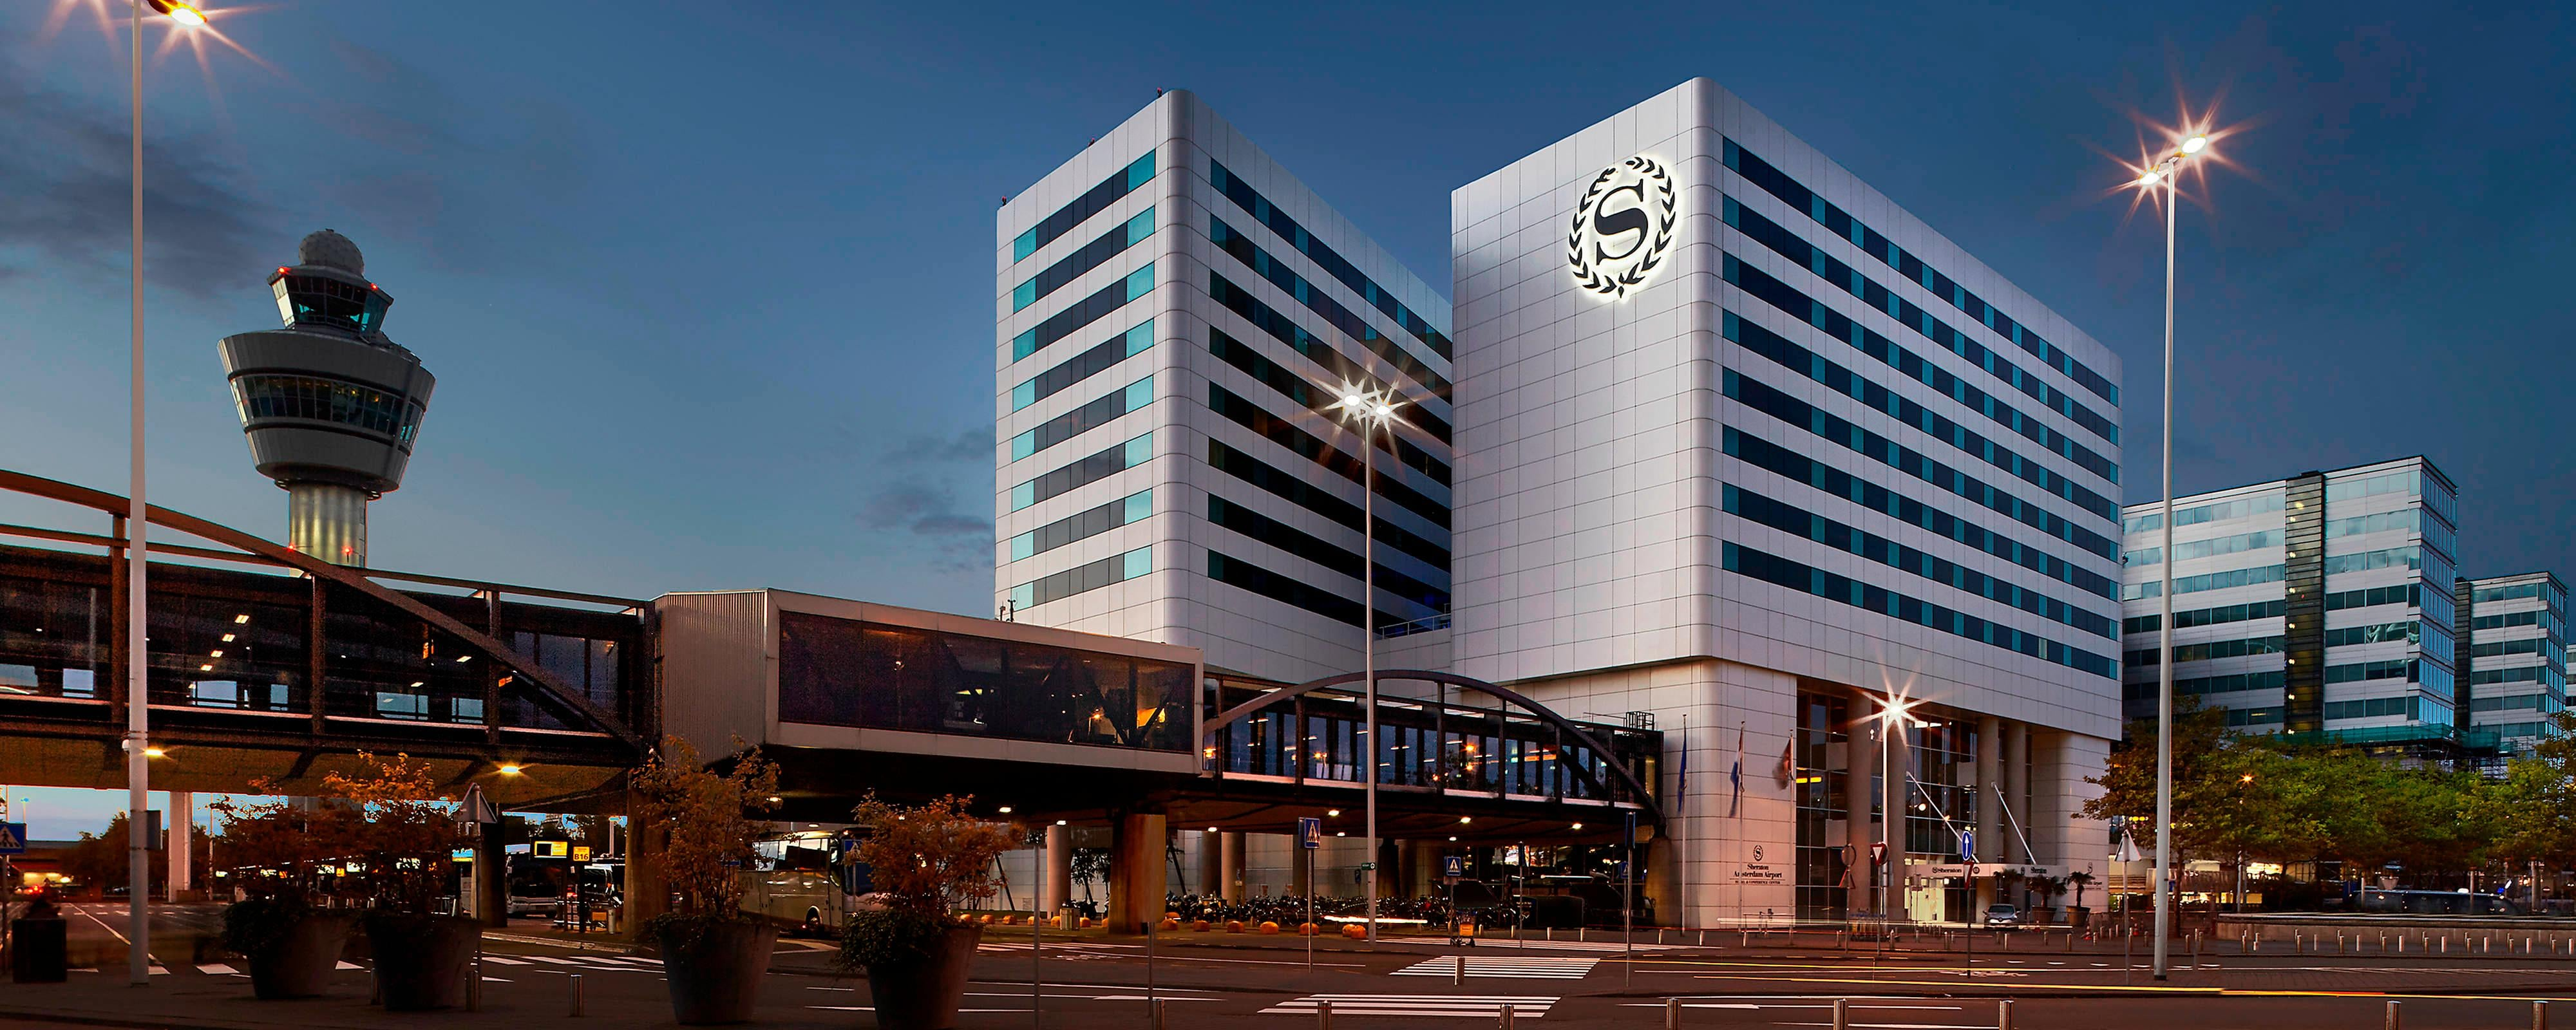 Sheraton Amsterdam Airport Hotel And Conference Center Amsterdam Spg